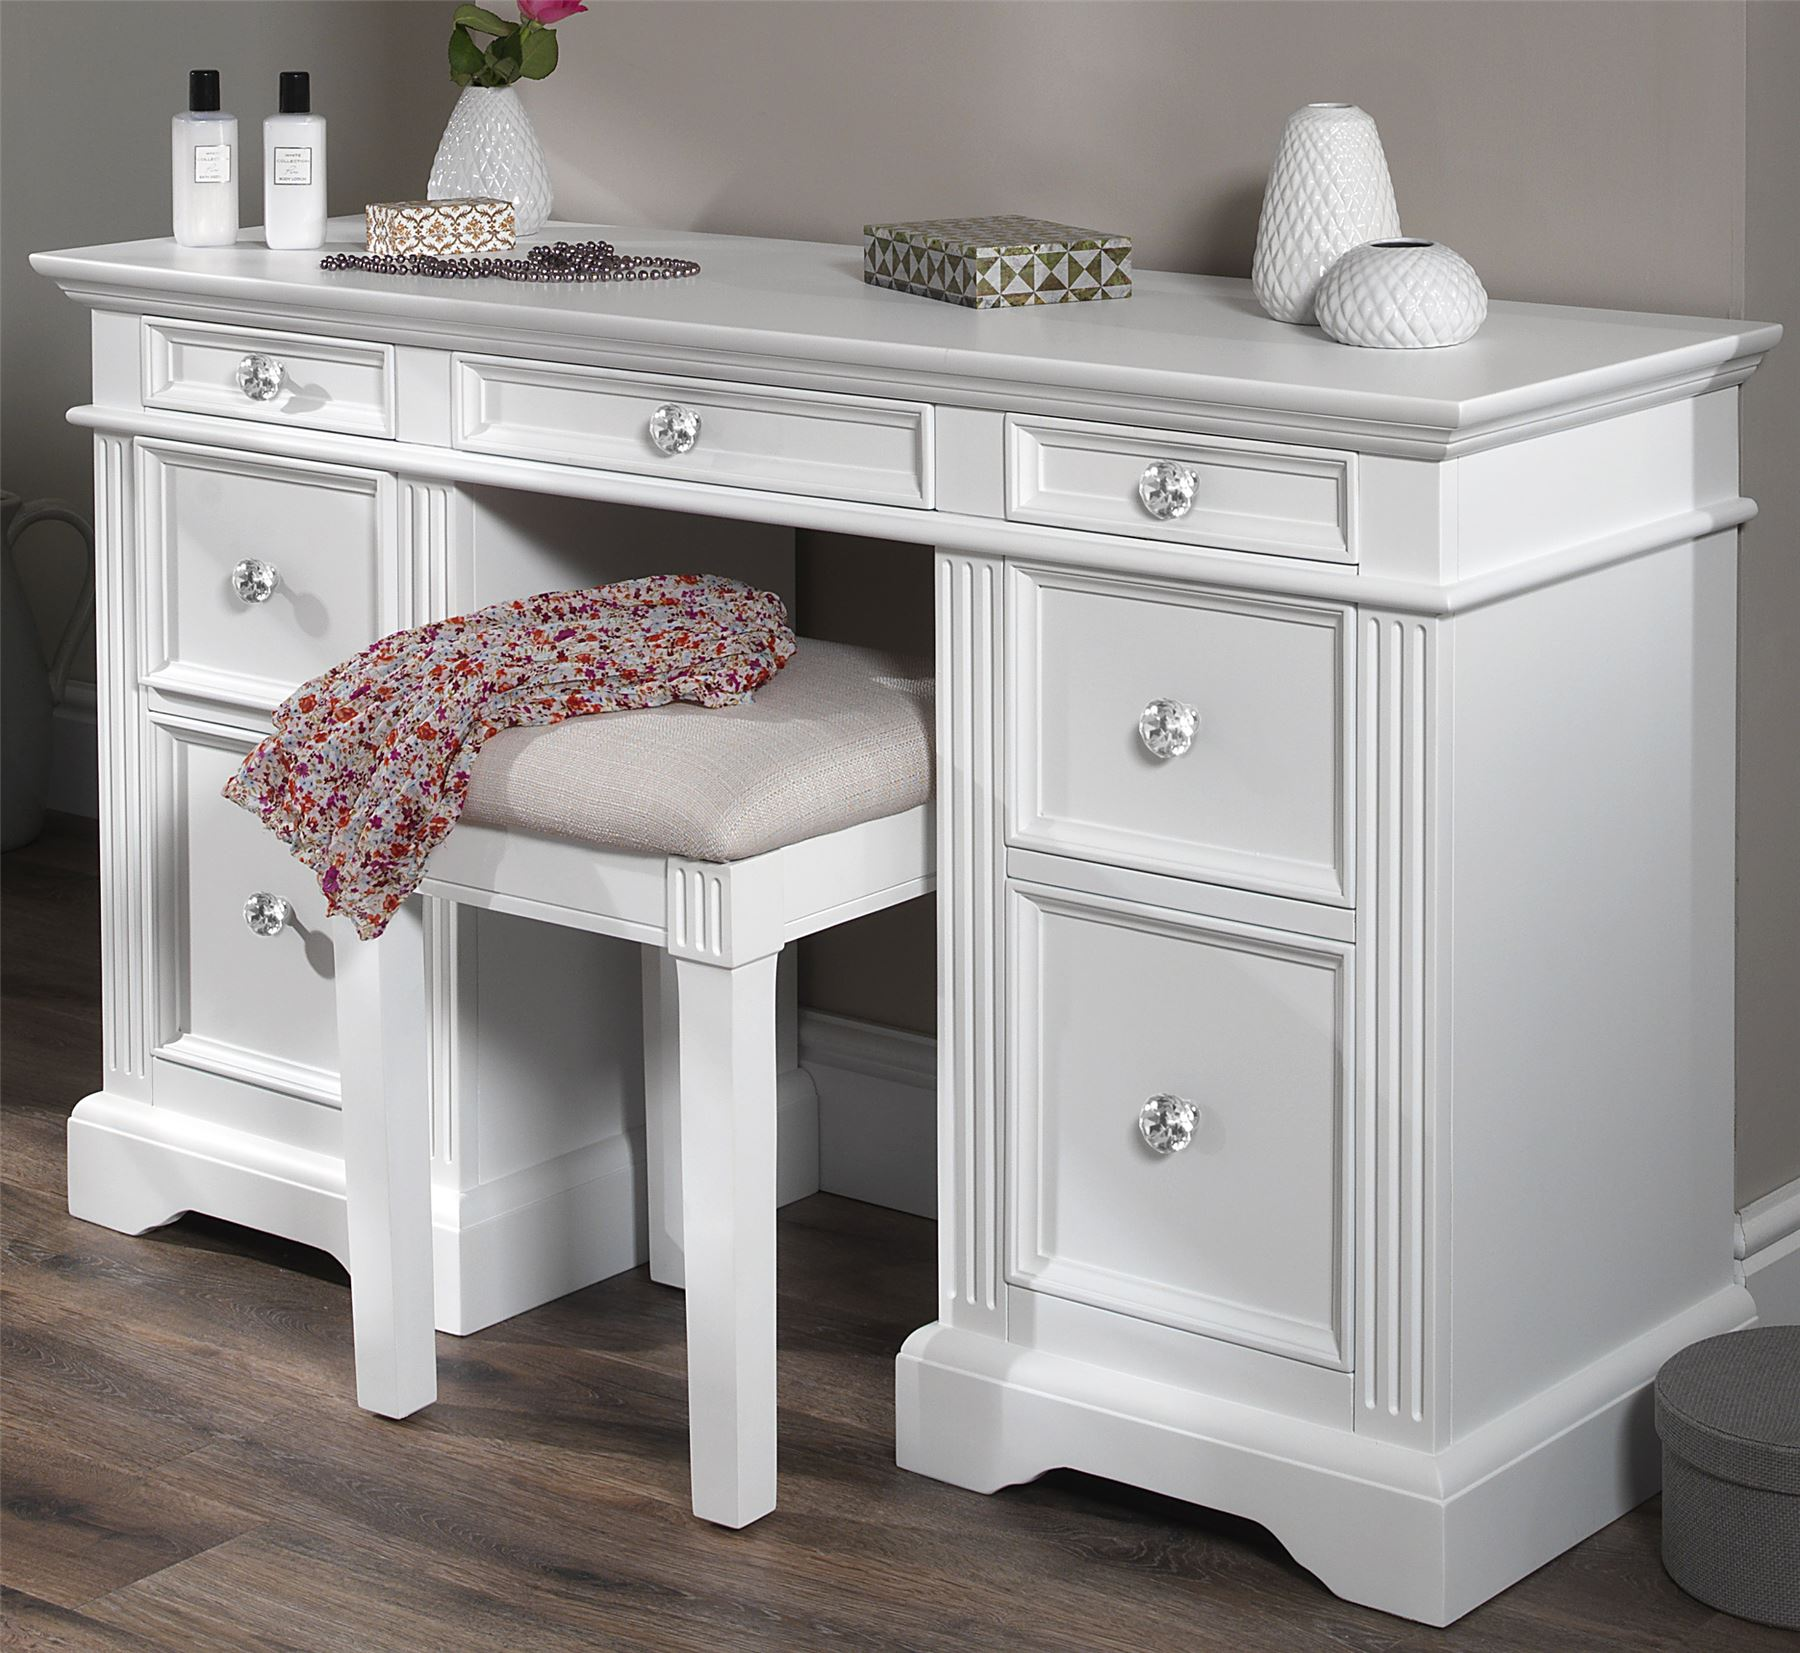 White Vanity Table With Drawers.Details About Gainsborough White Dressing Table Very Solid White Dressing Table Deep Drawers